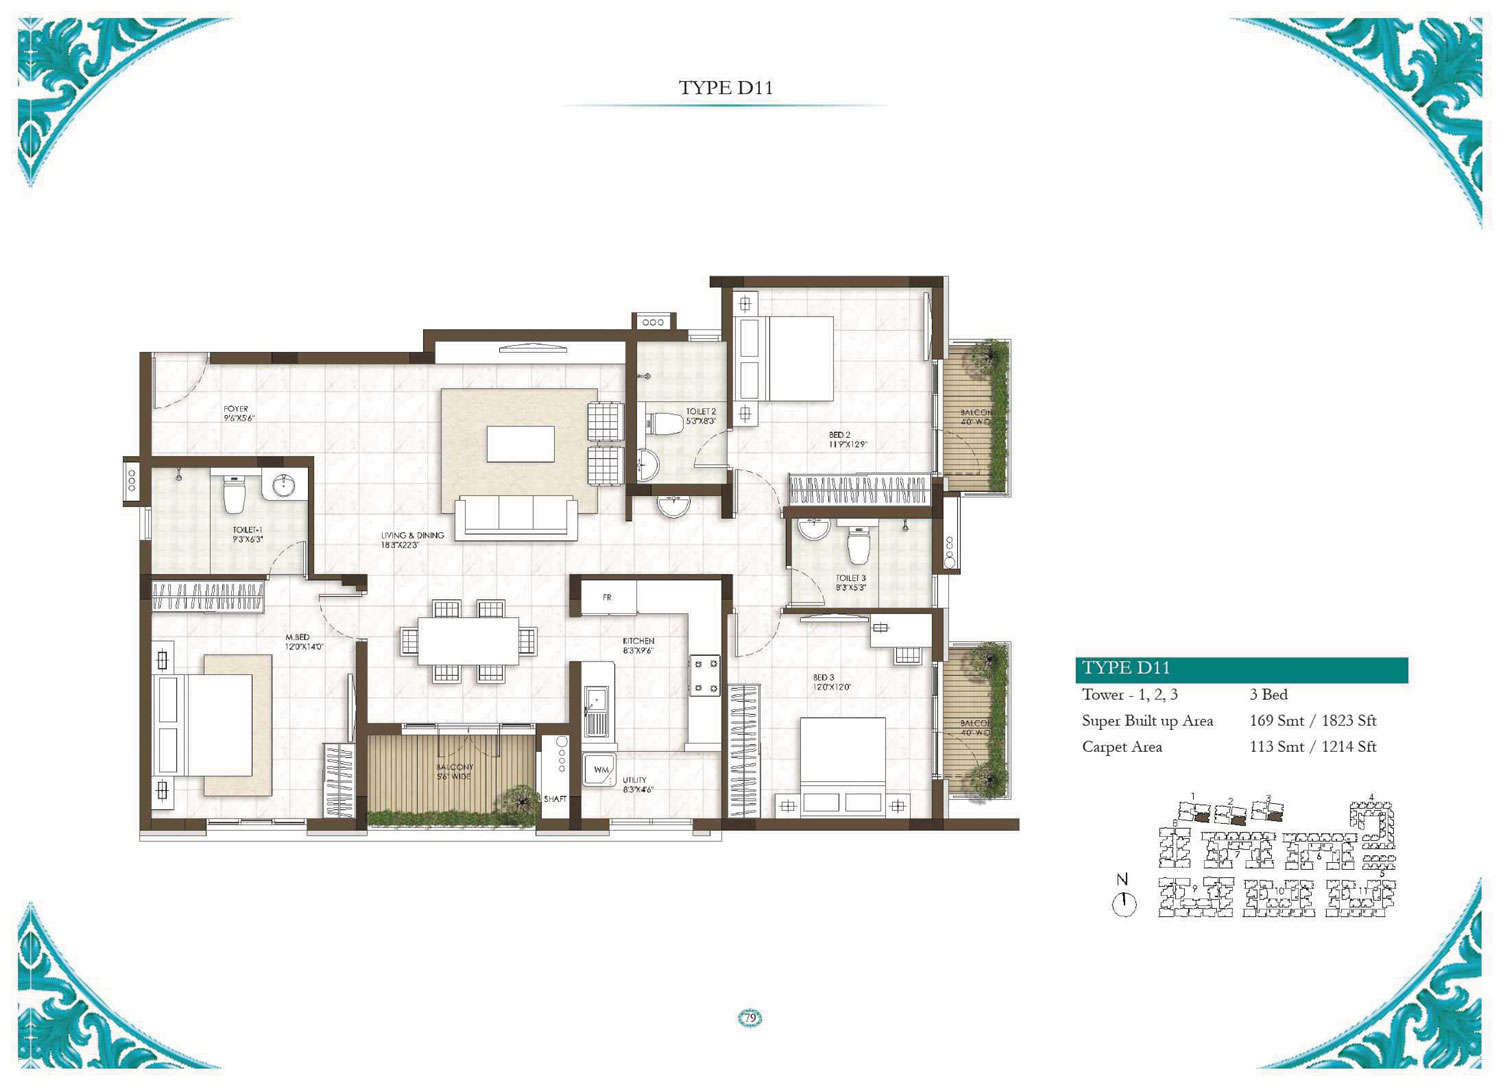 Type D11 - 3 Bed - 1823 Sq Ft